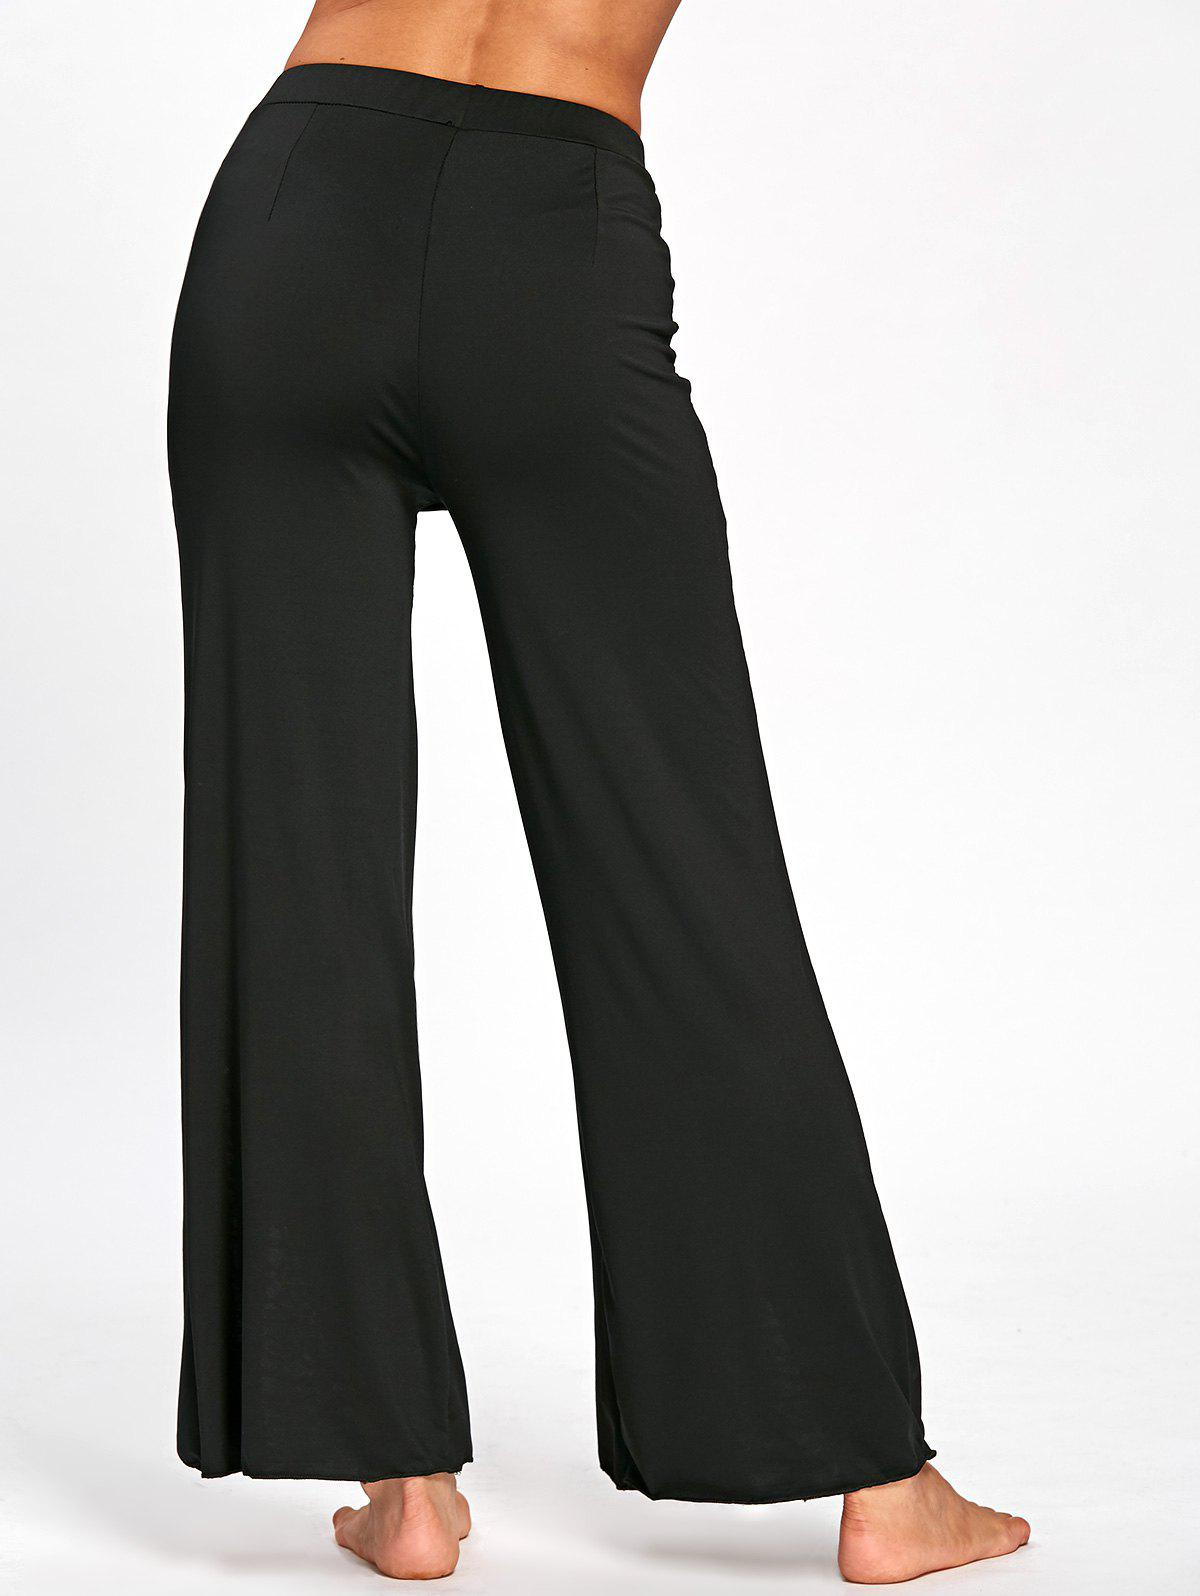 Lace Panel High Slit Palazzo Pants - BLACK 2XL